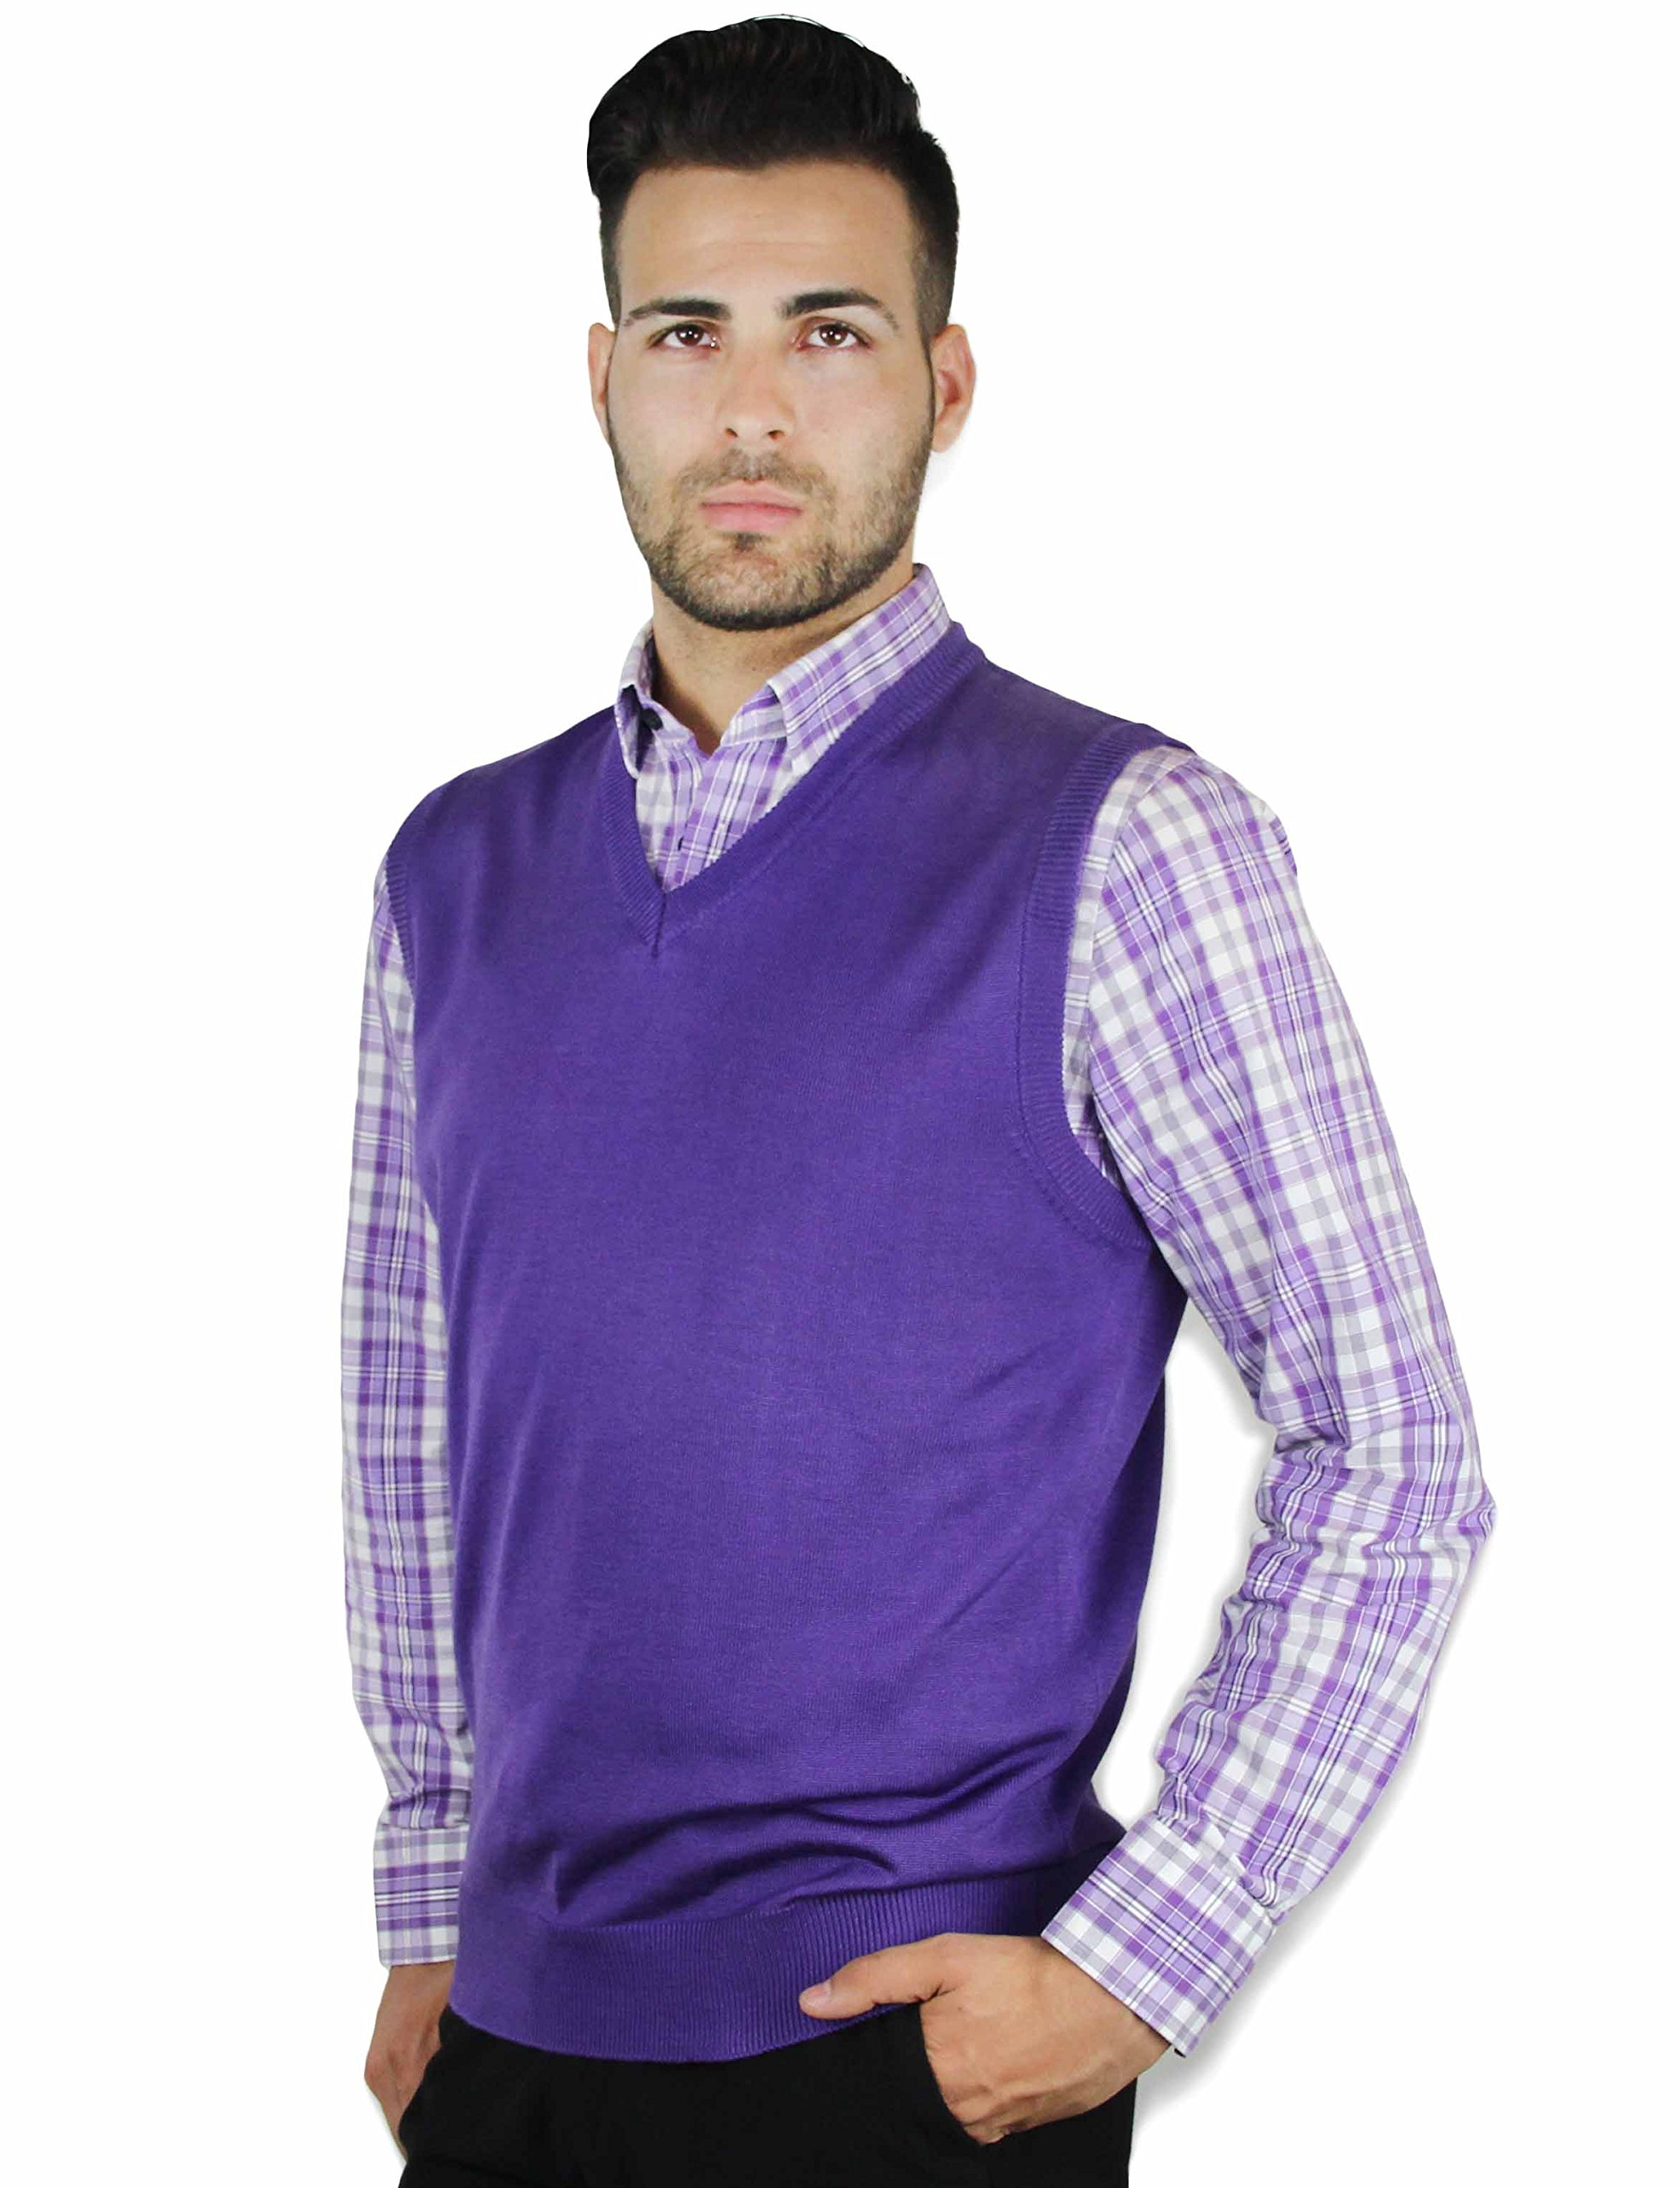 Blue Ocean Solid Color Sweater Vest Purple X-Large by Blue Ocean